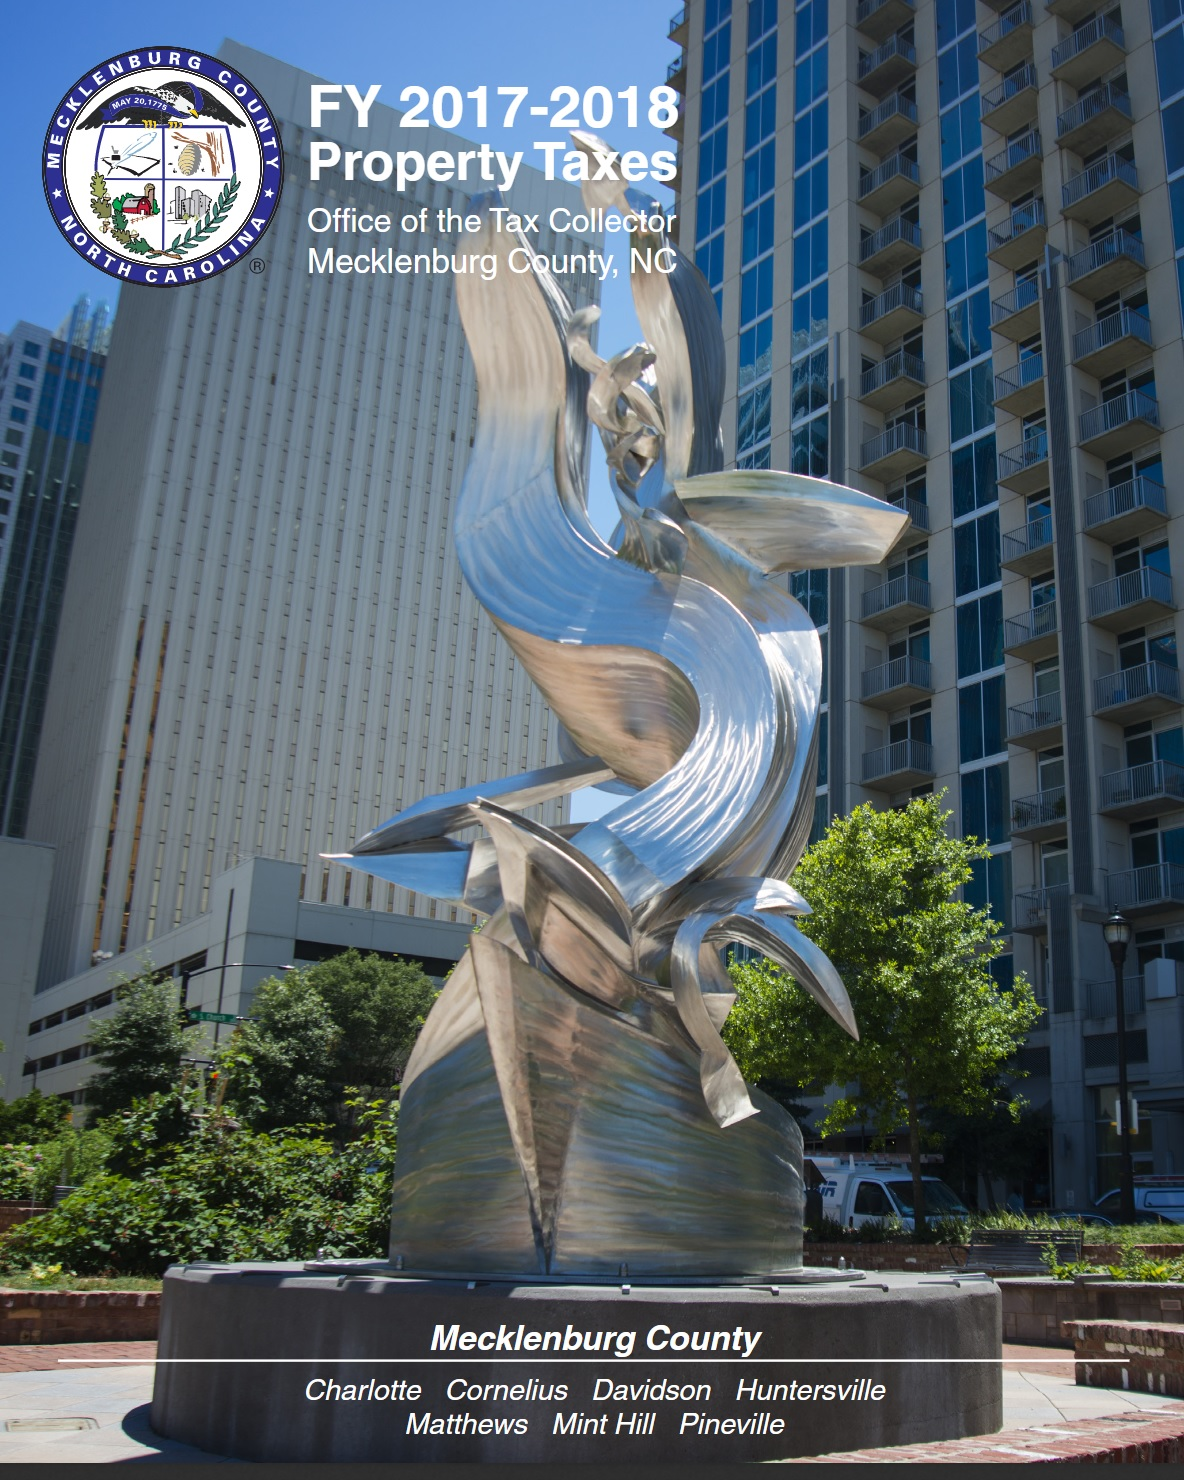 Mecklenburg County, NC Property Tax Handbook For 2018